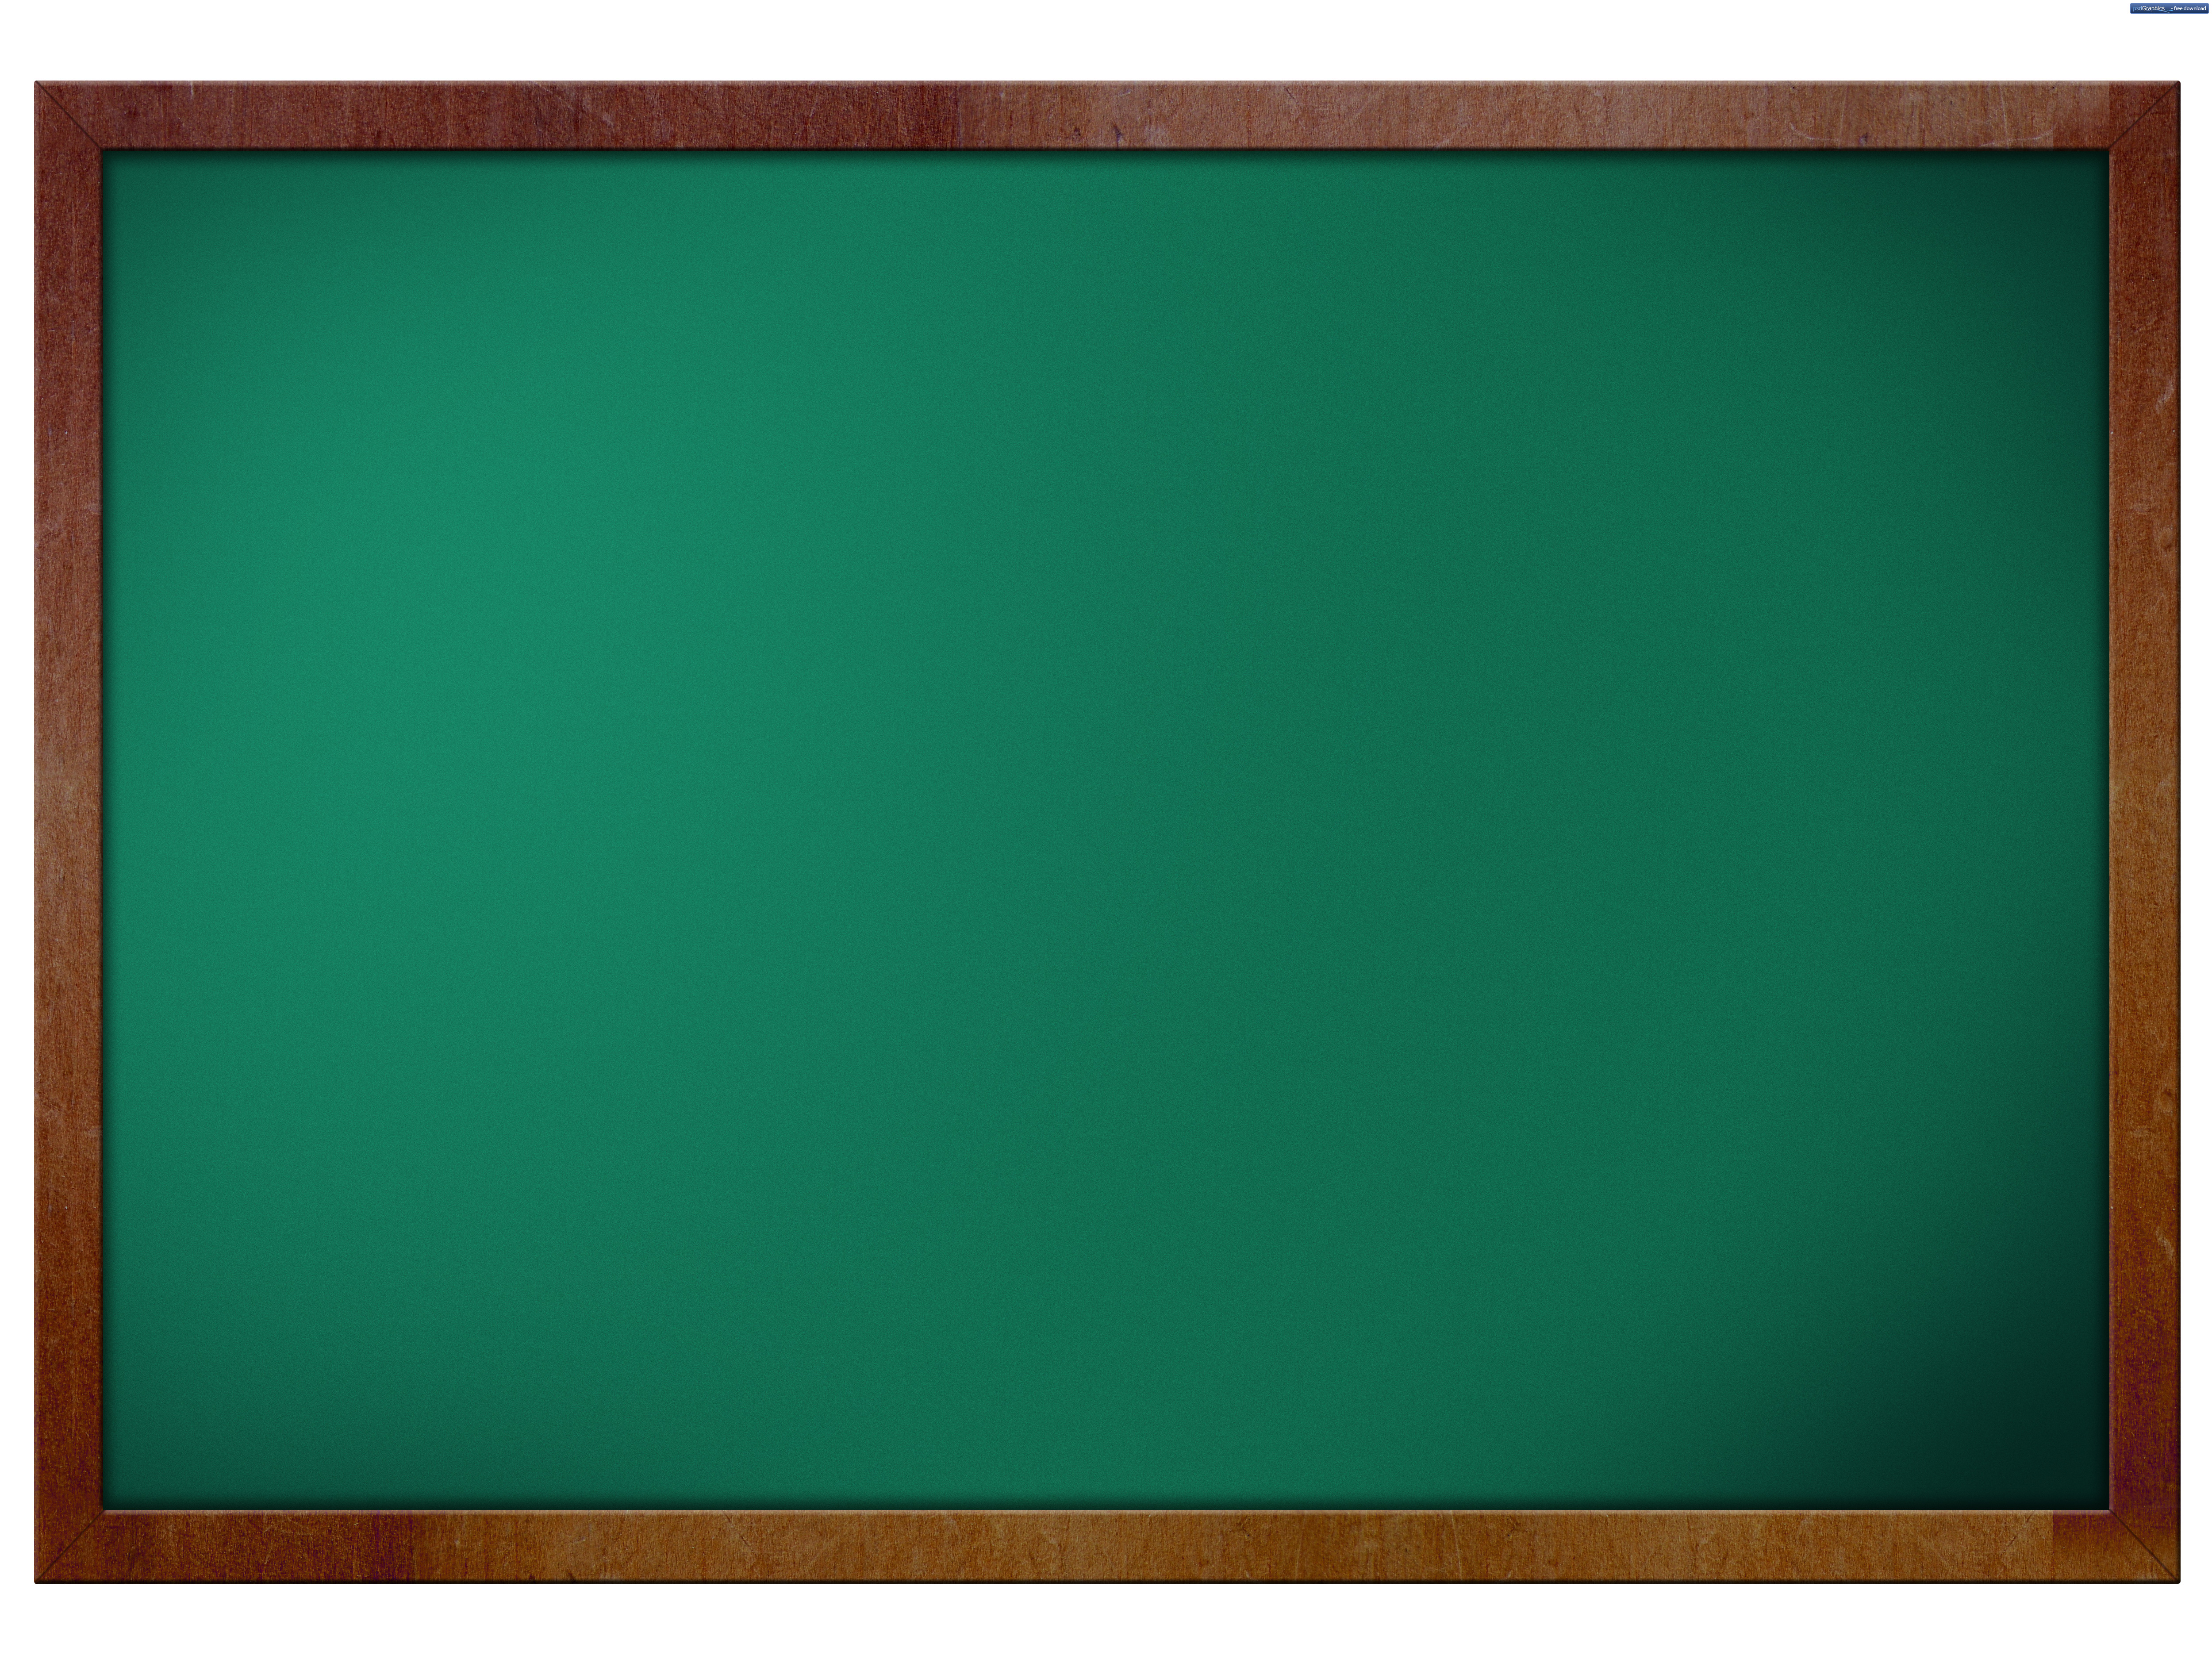 Blank Chalkboard Clipart - Clipart Suggest